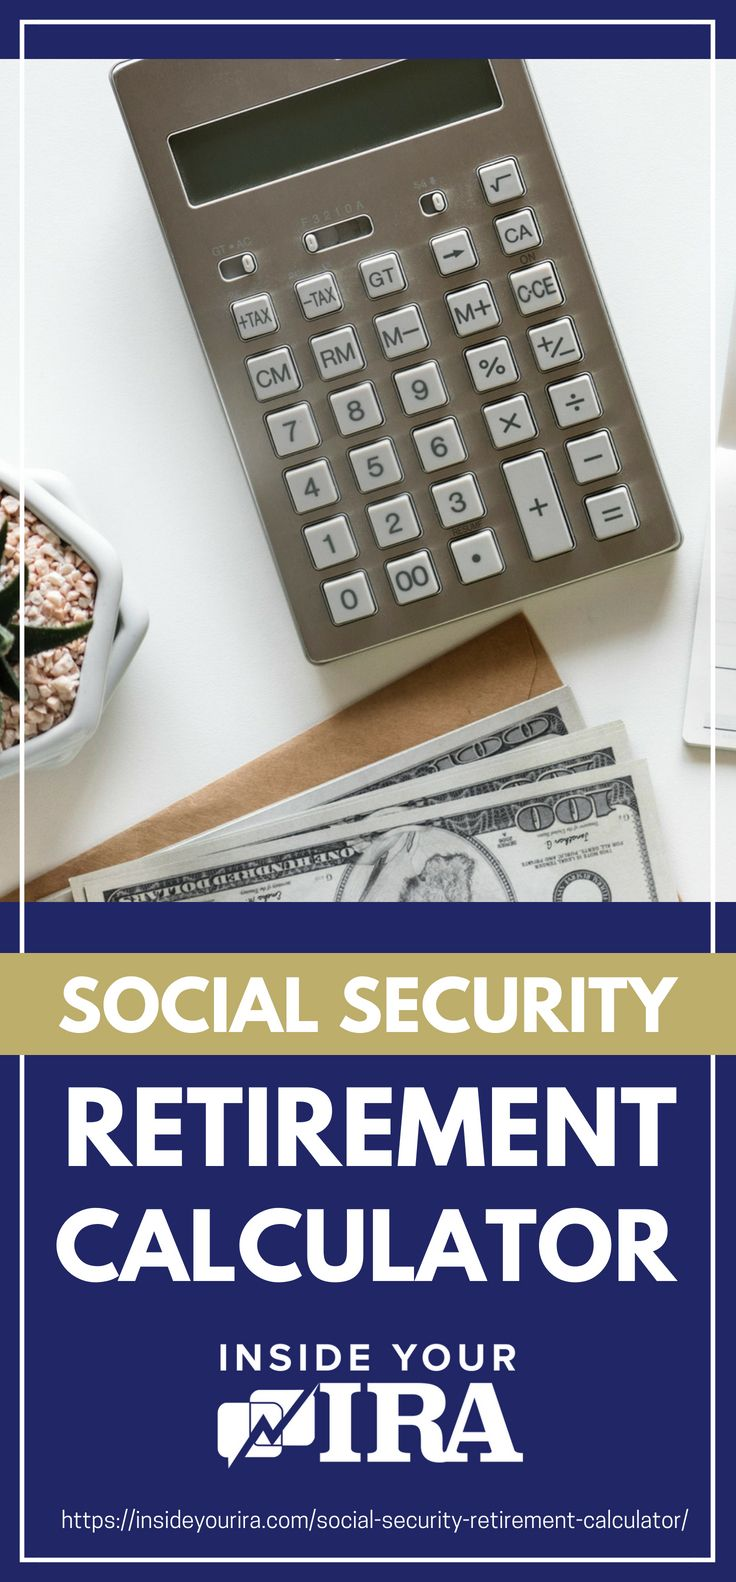 Social Security Retirement Calculator | Inside Your IRA https://insideyourira.com/social-security-retirement-calculator/